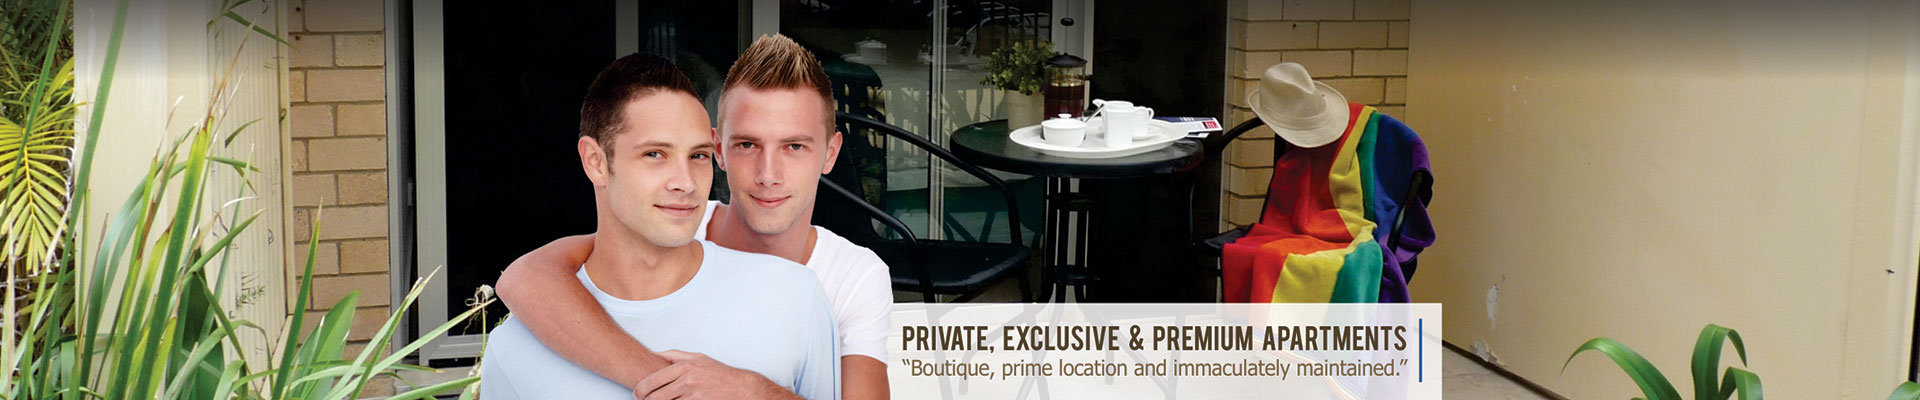 Private, exclusive and premium apartments